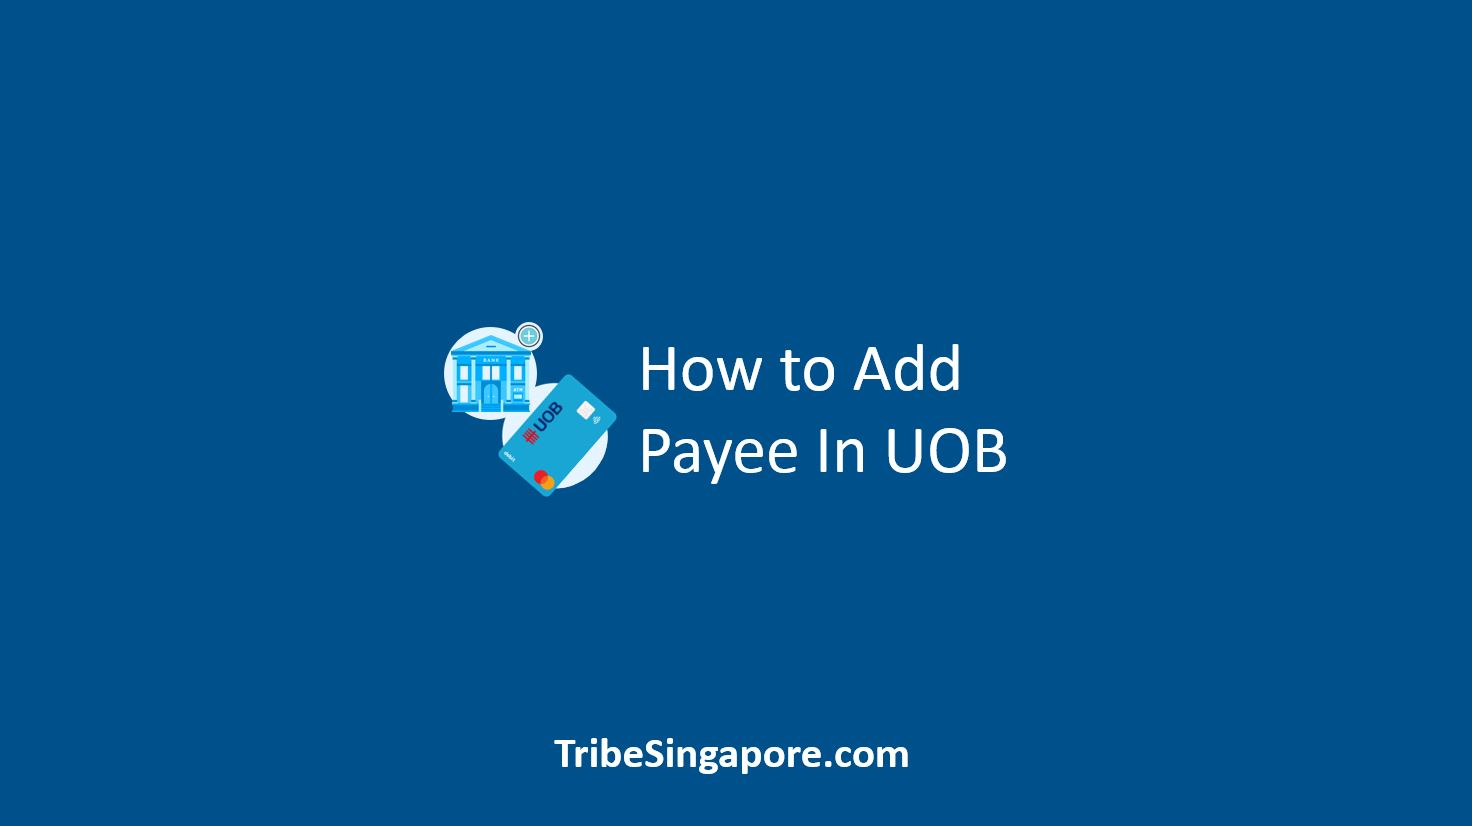 How to Add Payee In UOB